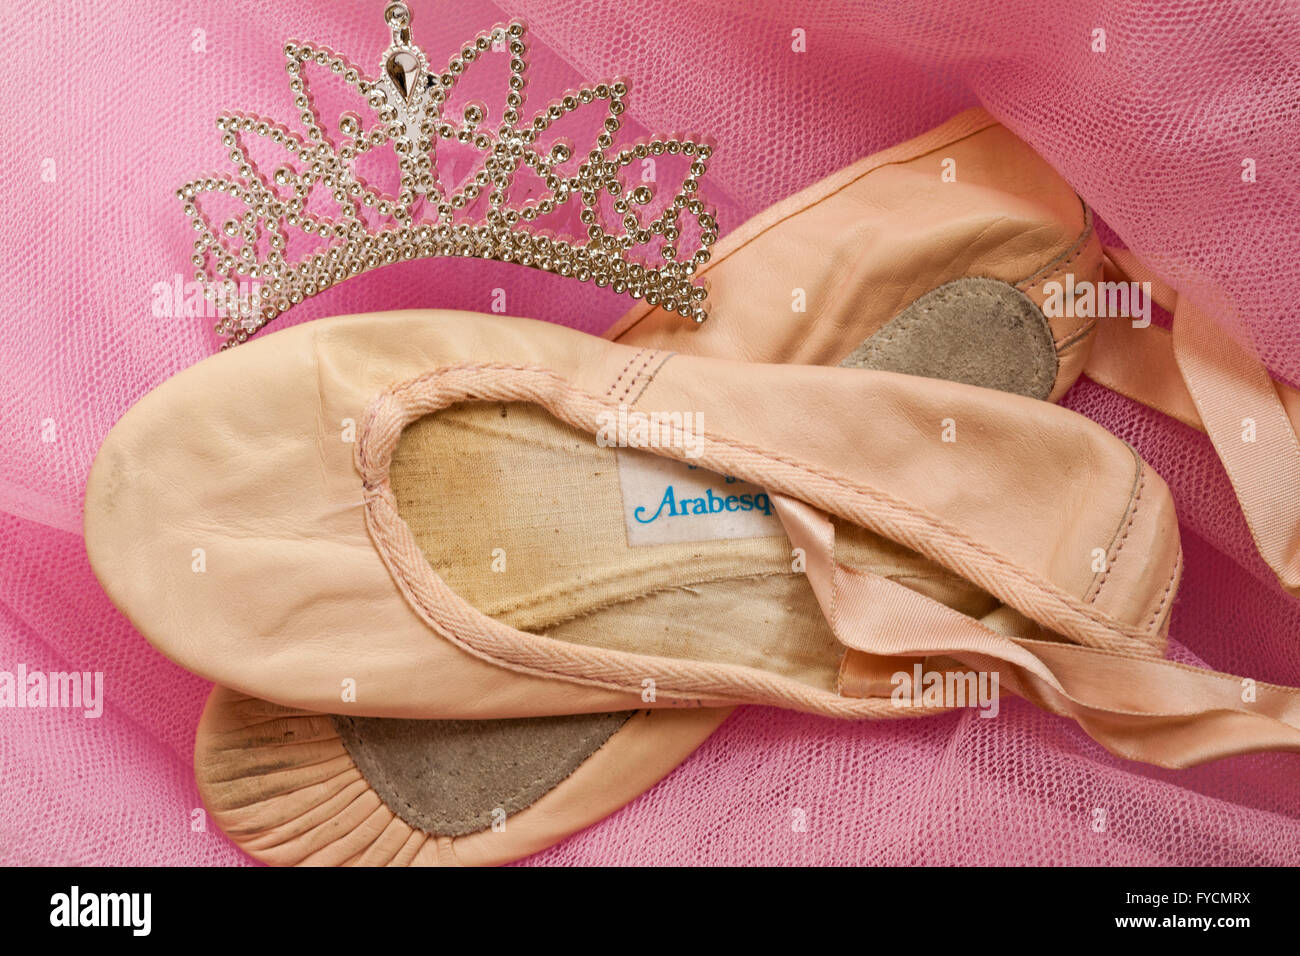 0ce3ddfc0 Pair of well worn and loved ballet shoes with tiara on pink tutu - Stock  Image